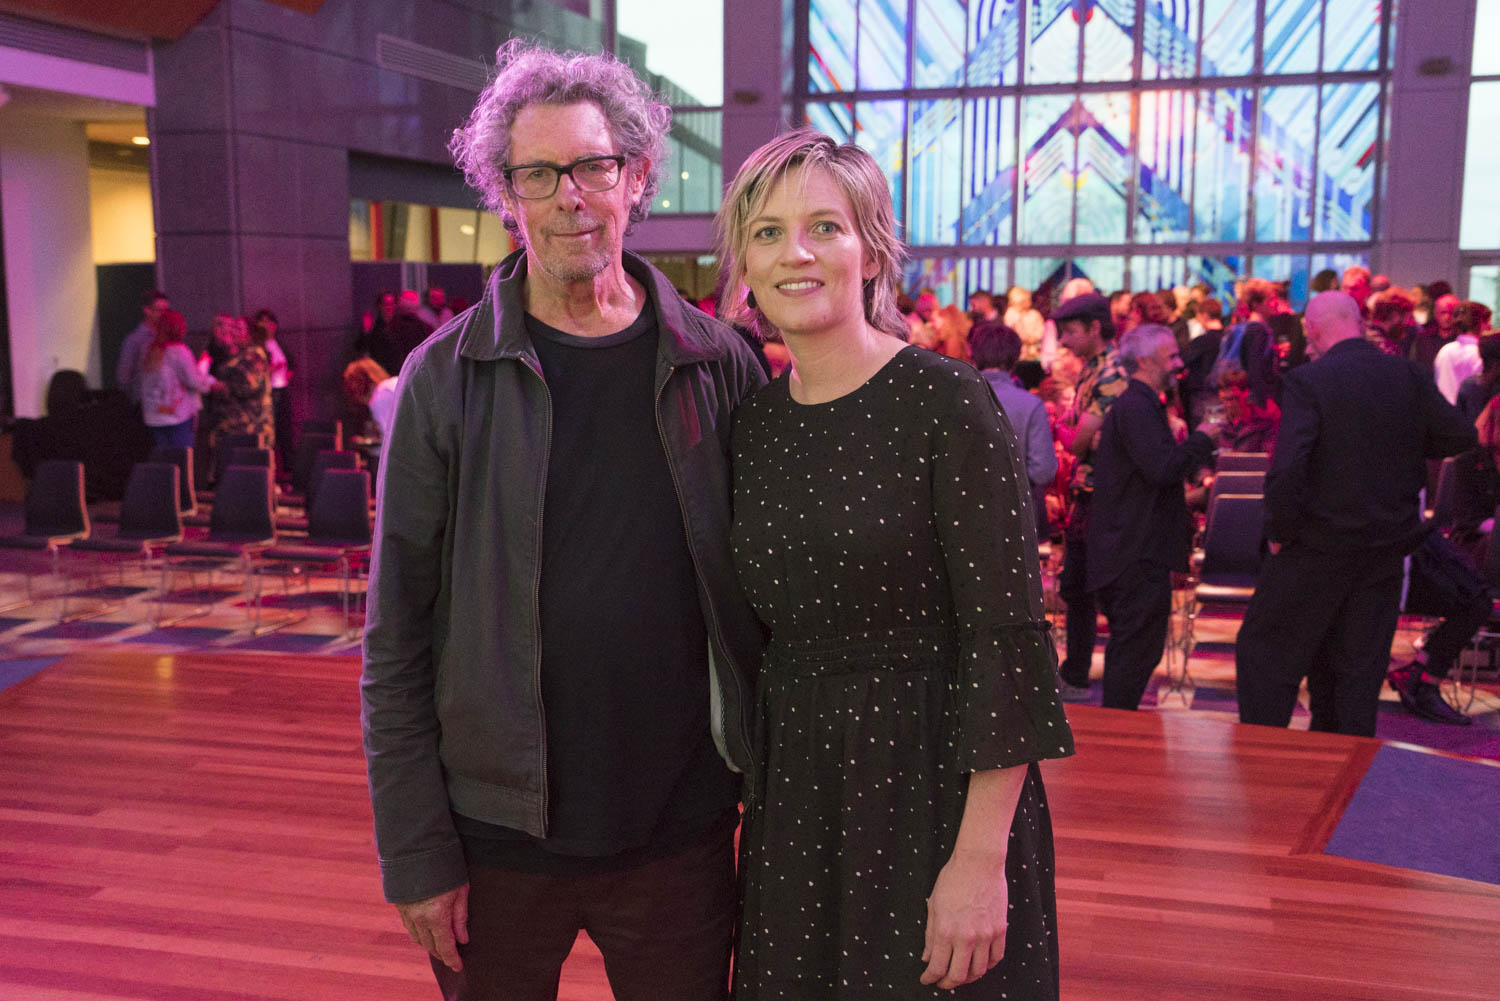 Winner of the 2017 New Zealand Photobook Award Allan McDonald with Libby Jeffery, co-founder and marketing manager of award sponsor Momento Pro, at the opening of the Photobook/NZ Festival, Te Papa, 9 March, 2018.